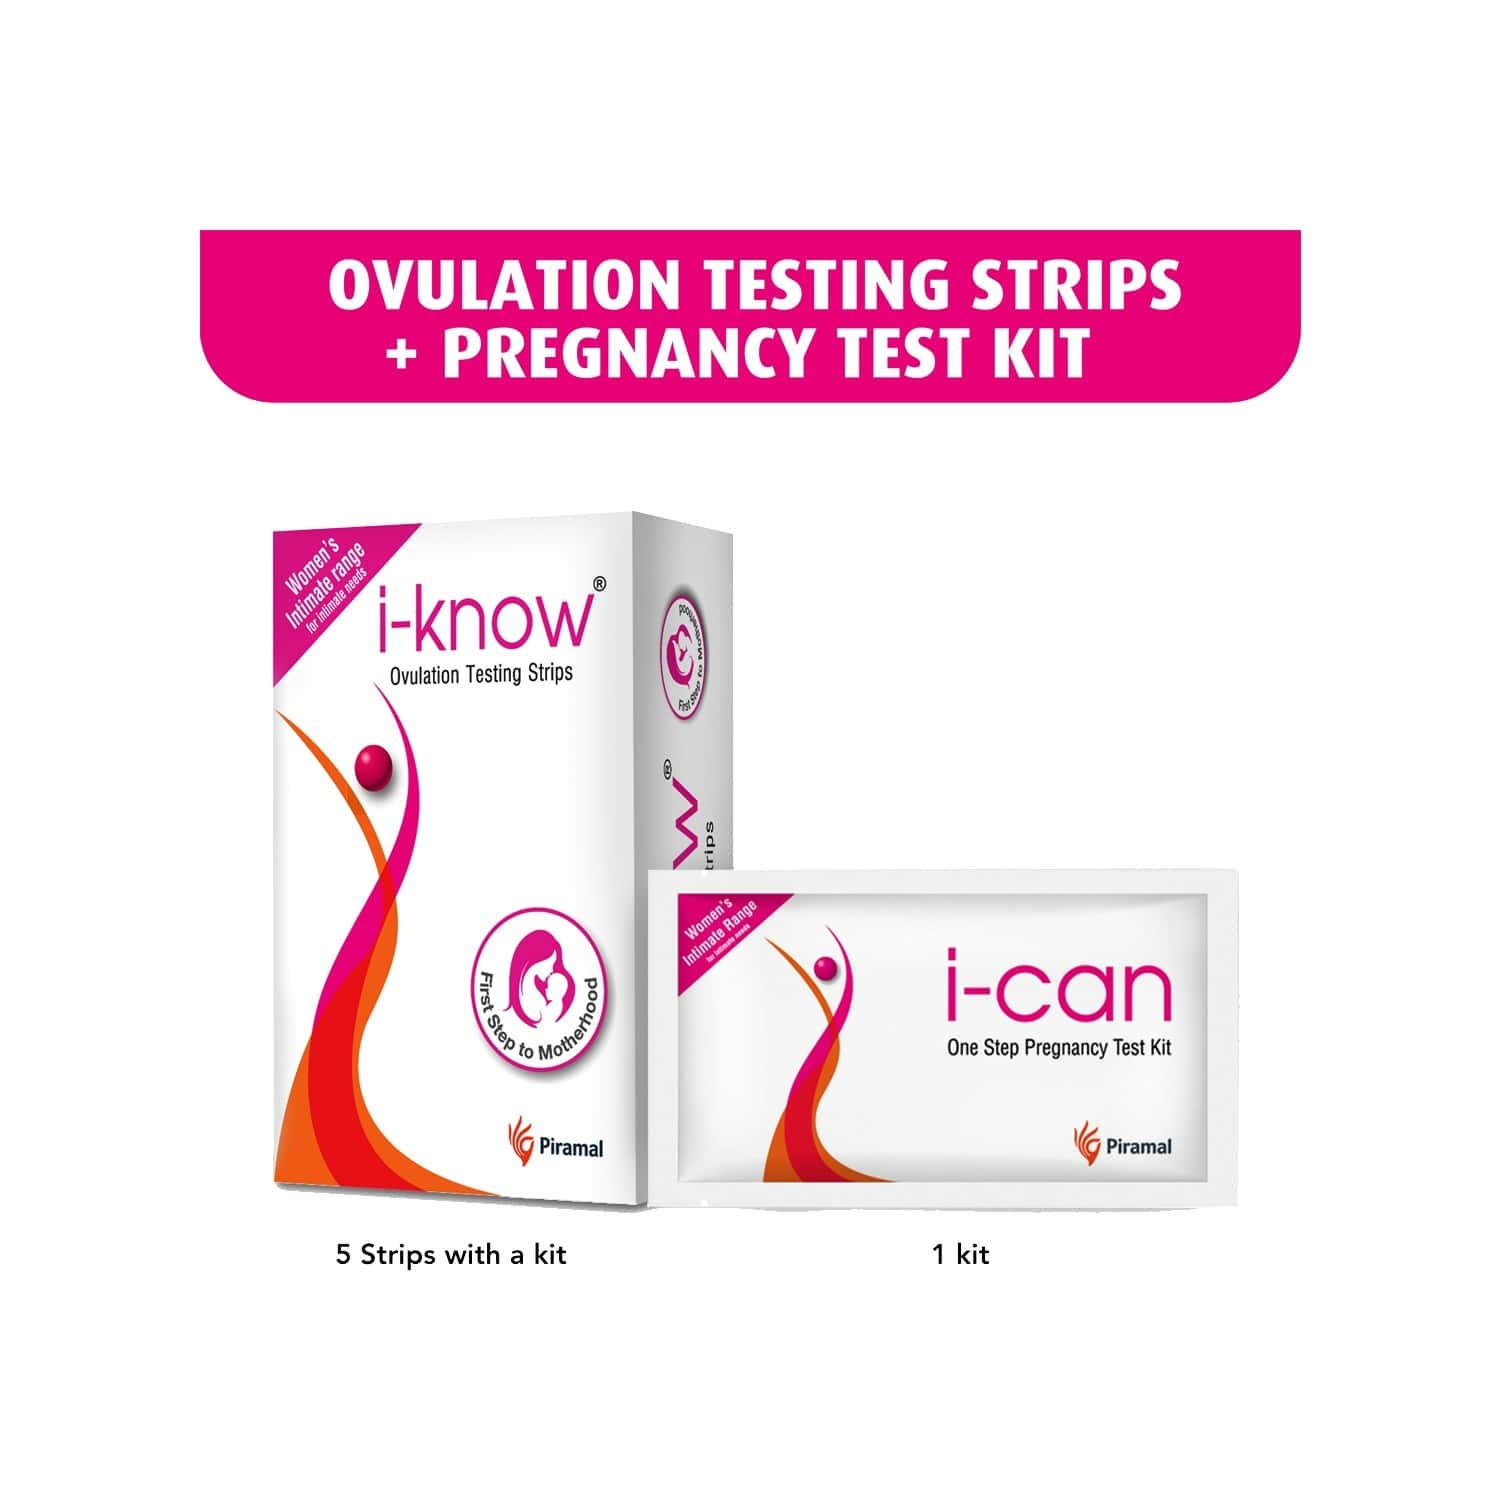 I-know Ovulation Detection Kit (with Free I-can Pregnancy Test Kit)